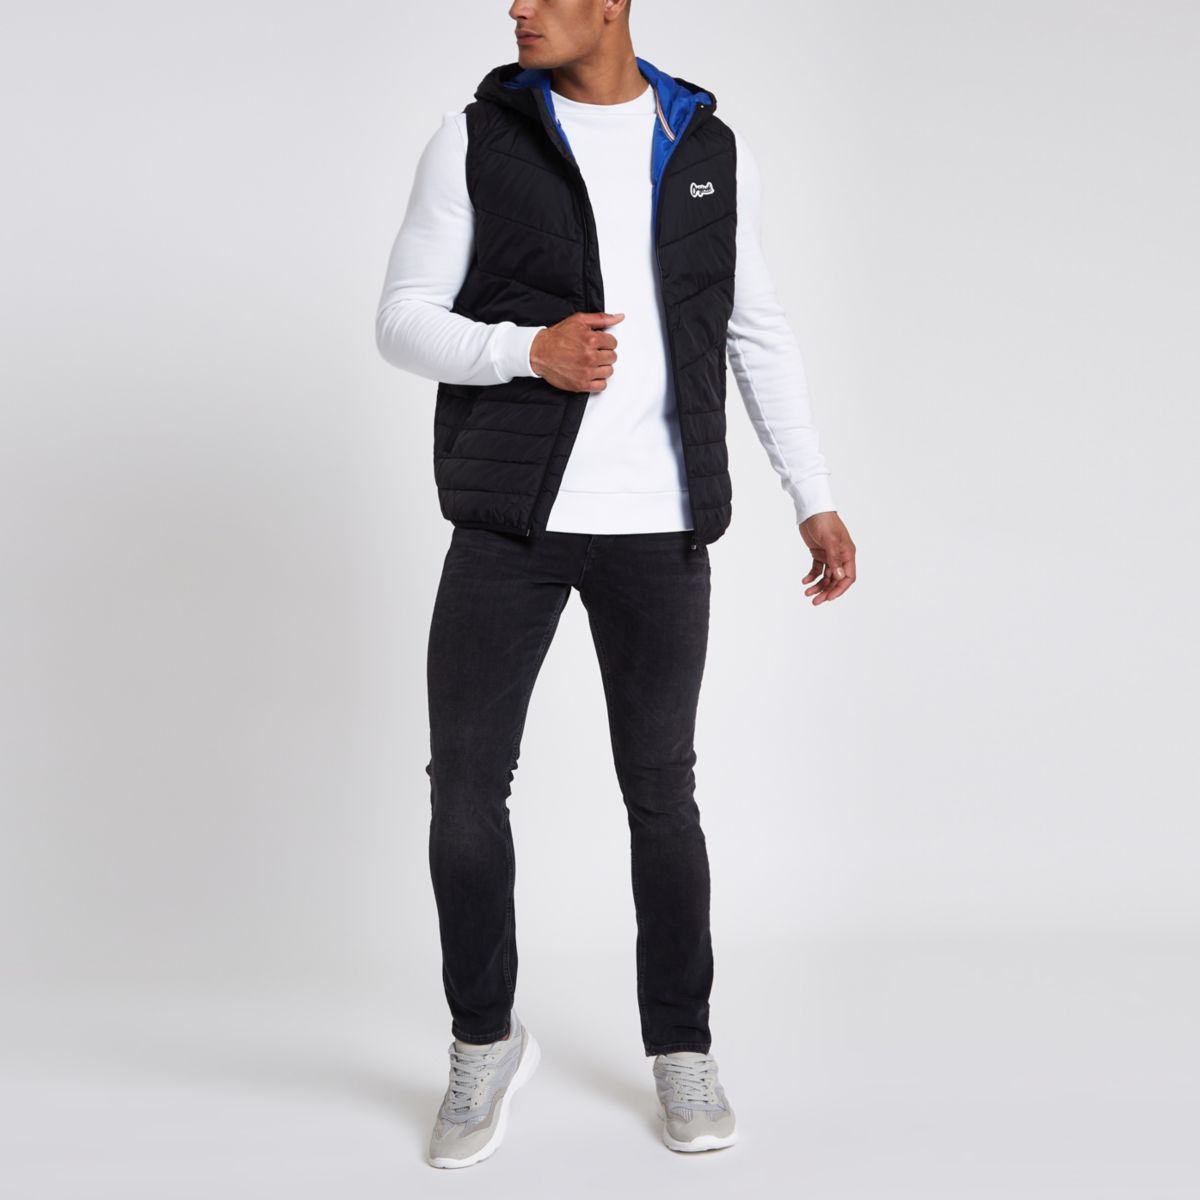 Jack & Jones Originals black puffer gilet